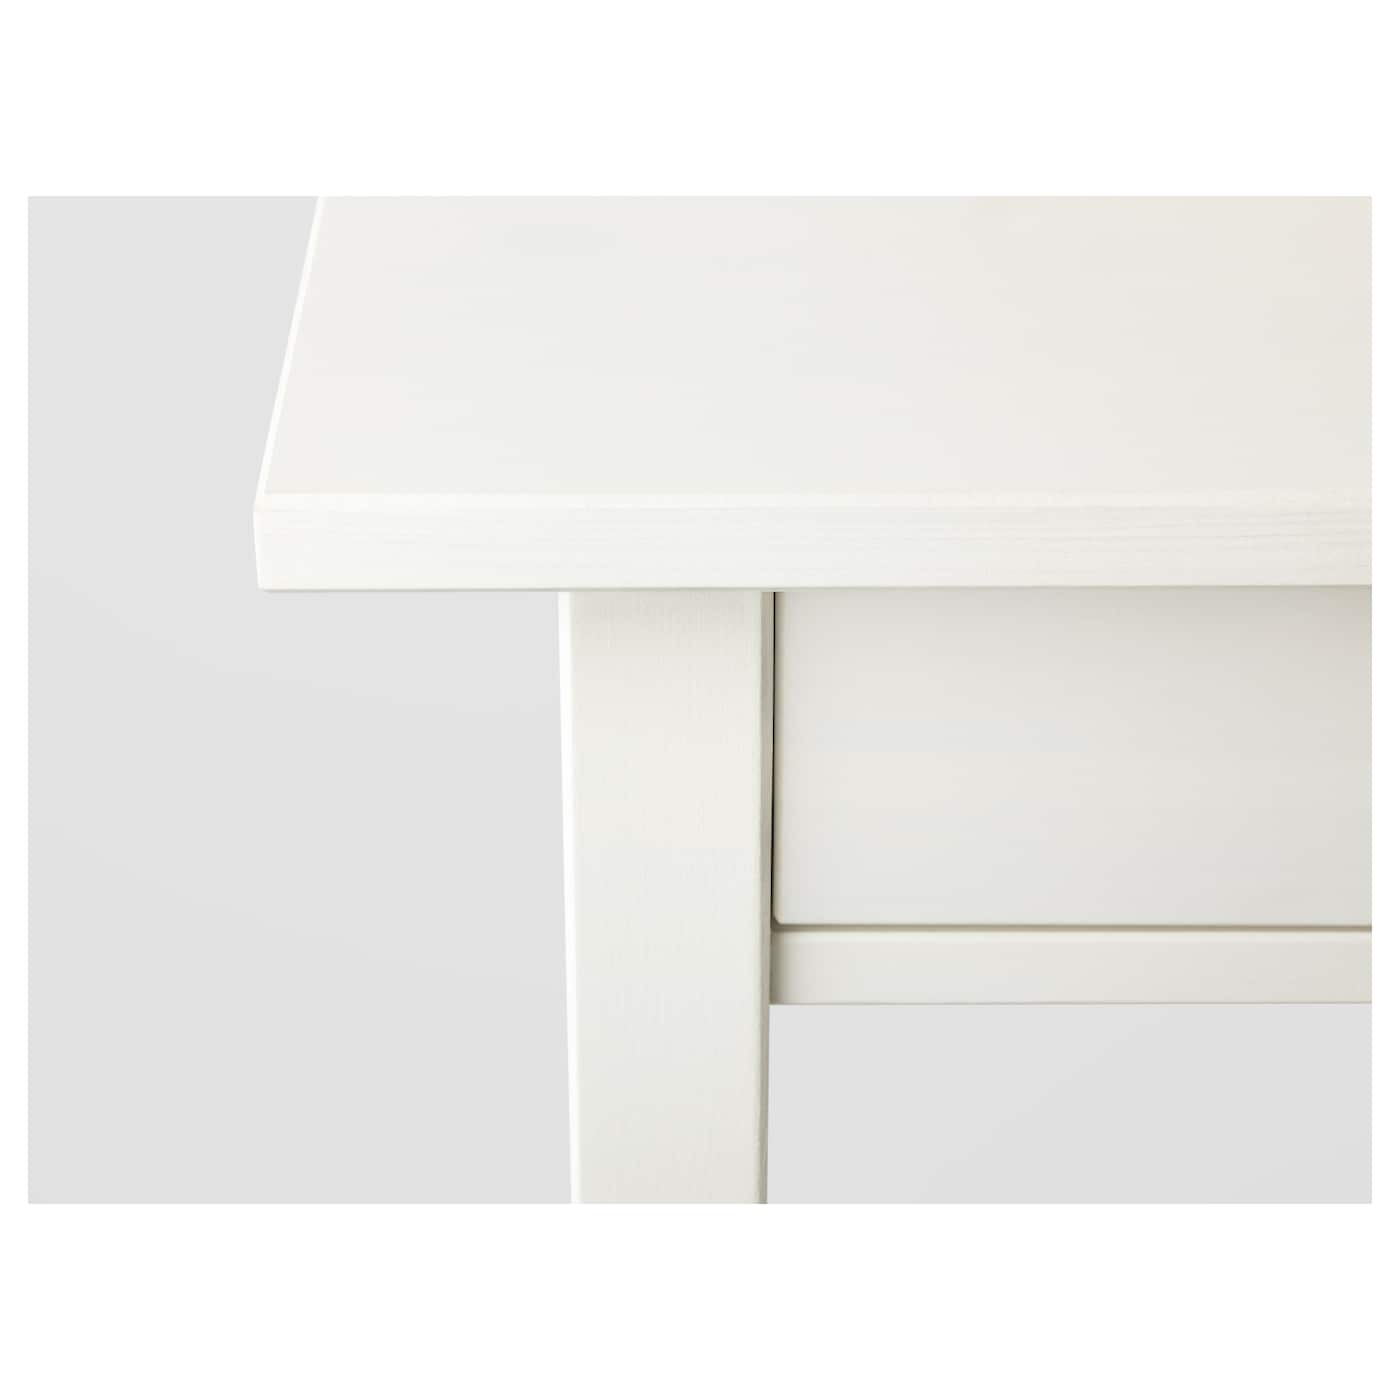 Hemnes Coffee Table White Stain 118x75 Cm: HEMNES Bedside Table White Stain 46 X 35 Cm